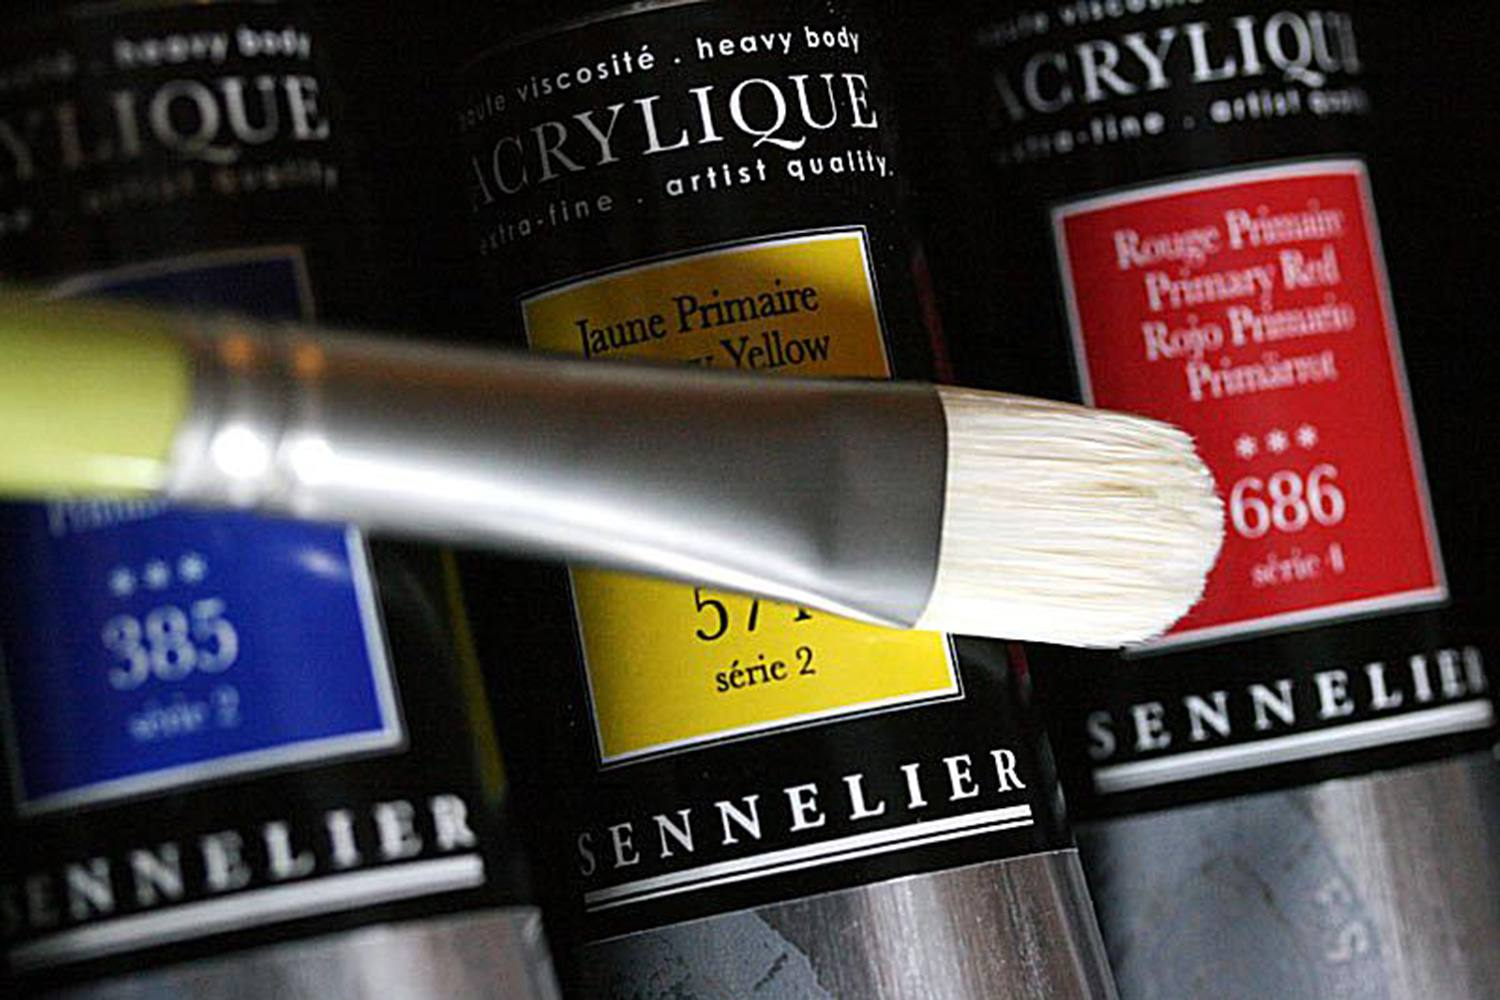 For Glazing And Blending Sennelier Acrylics